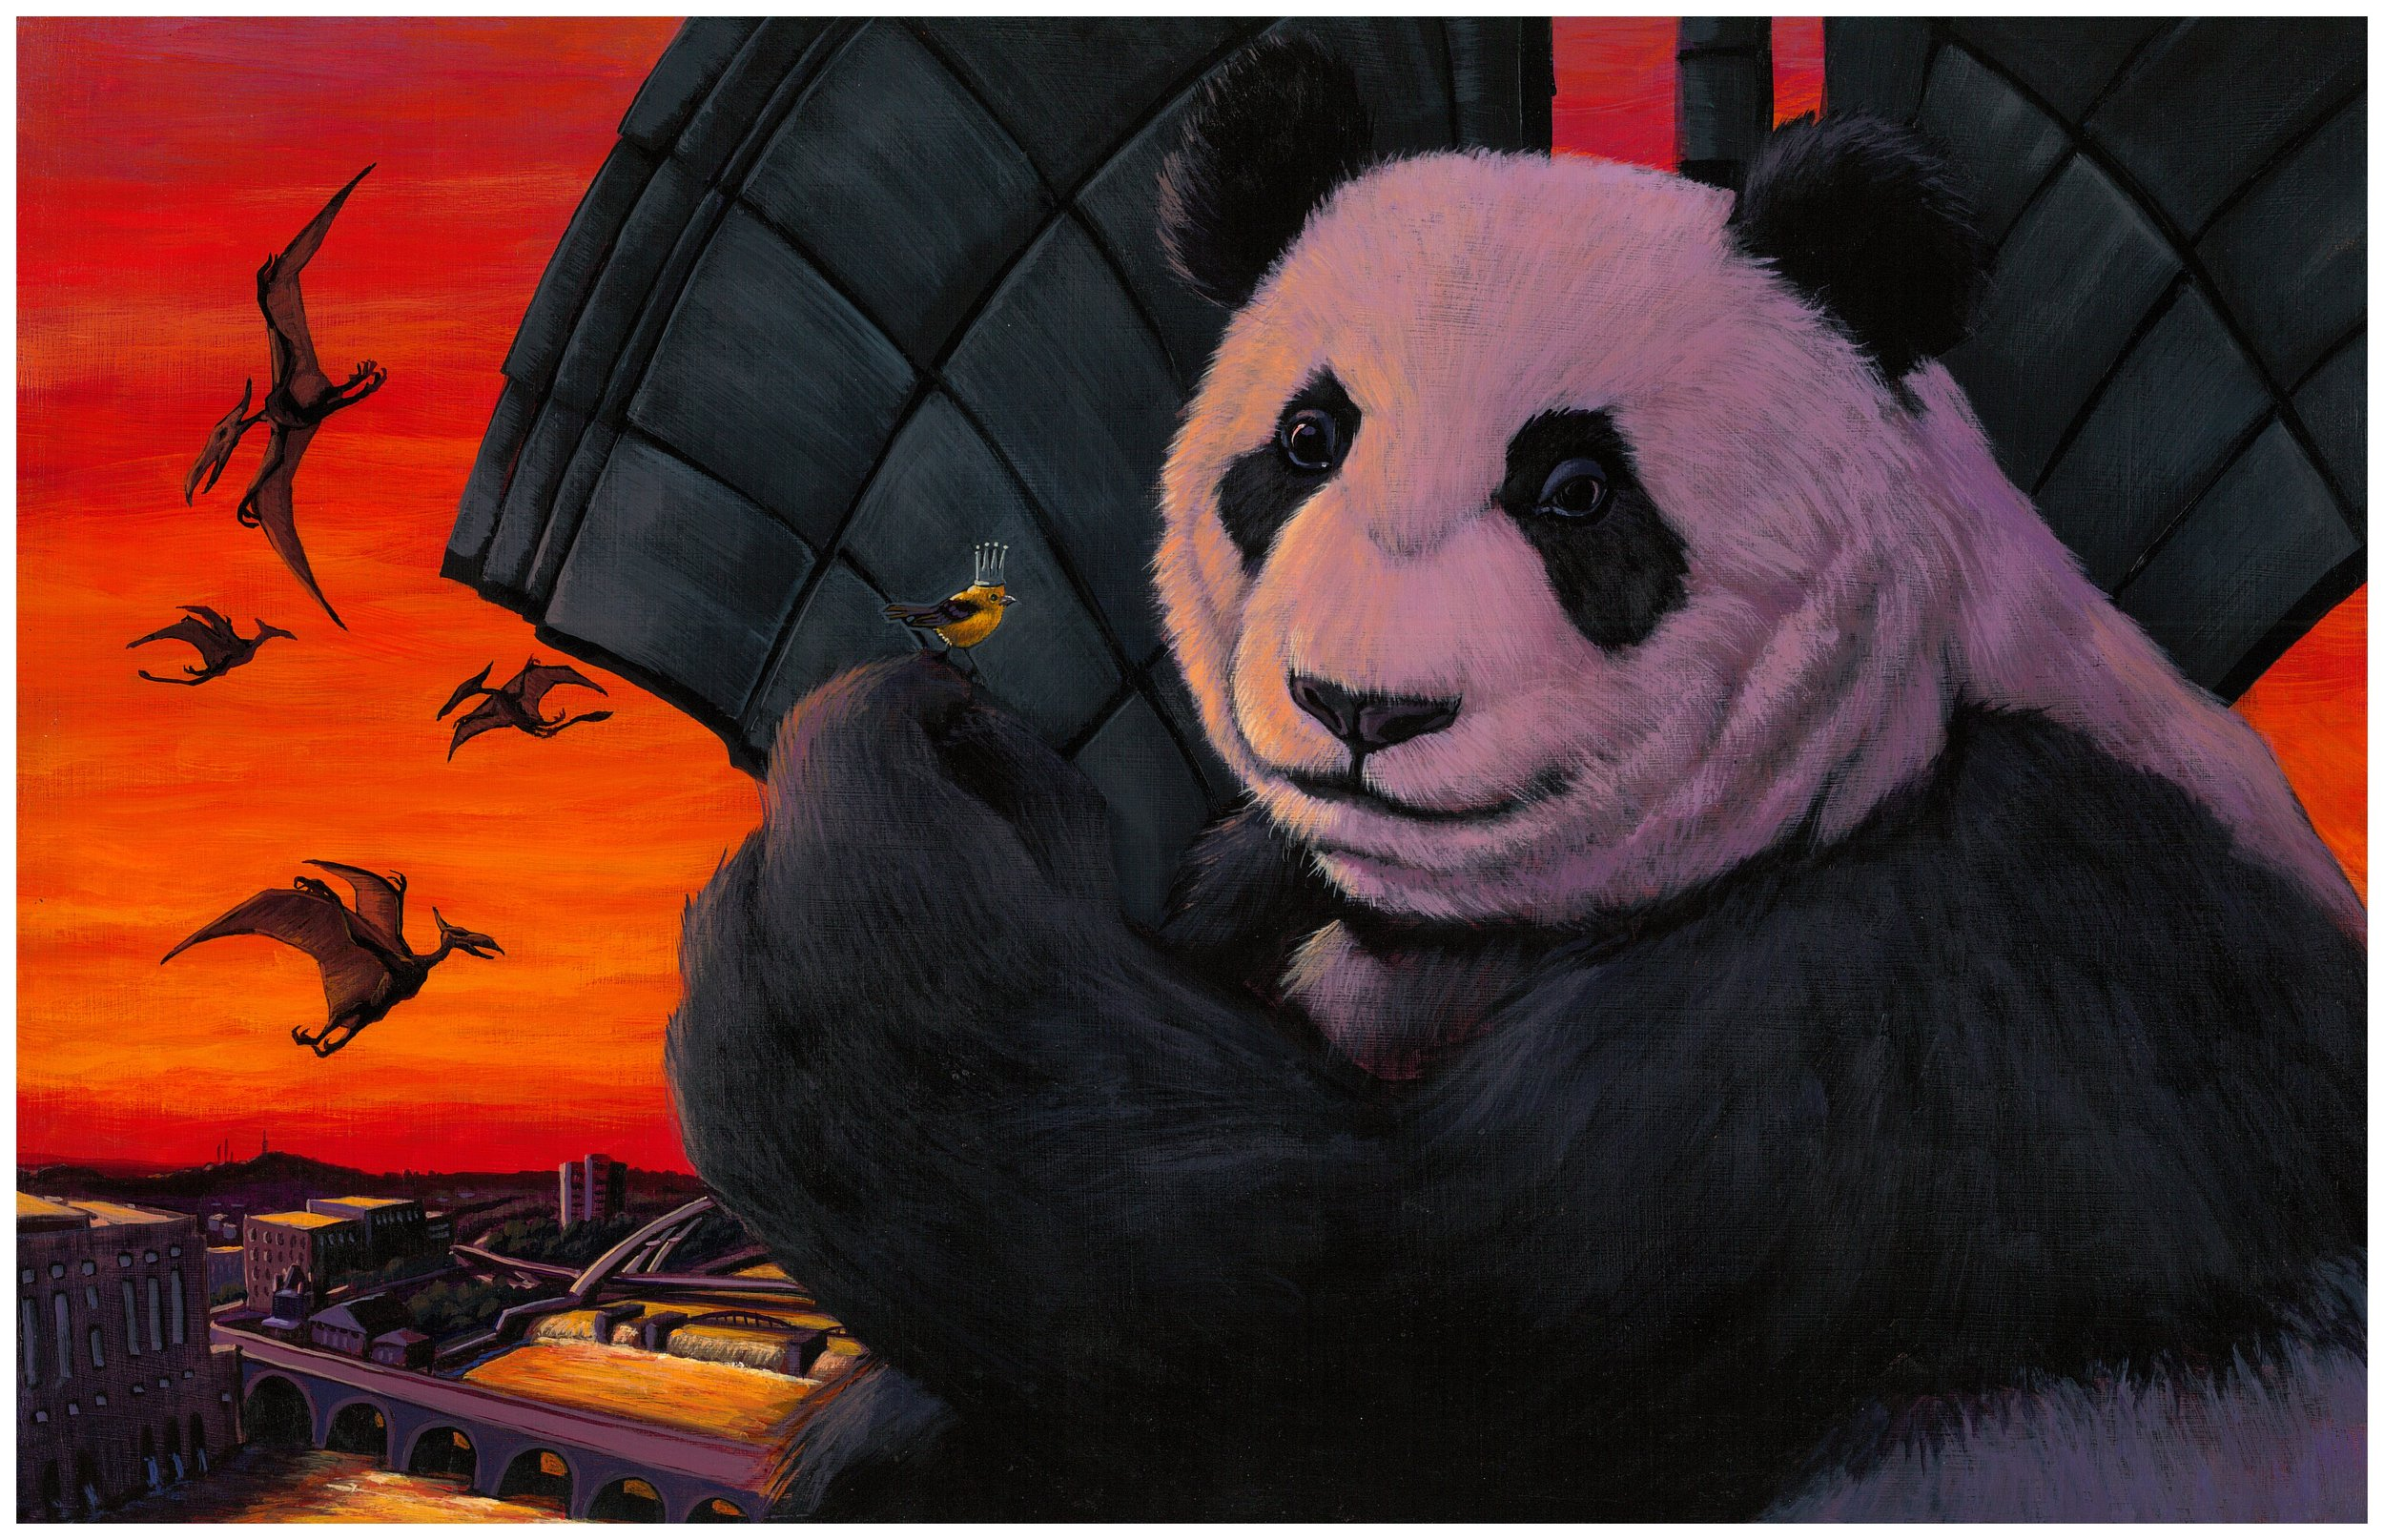 """Giant Panda Dub Style"" IPA illustration by Allen Firlit"